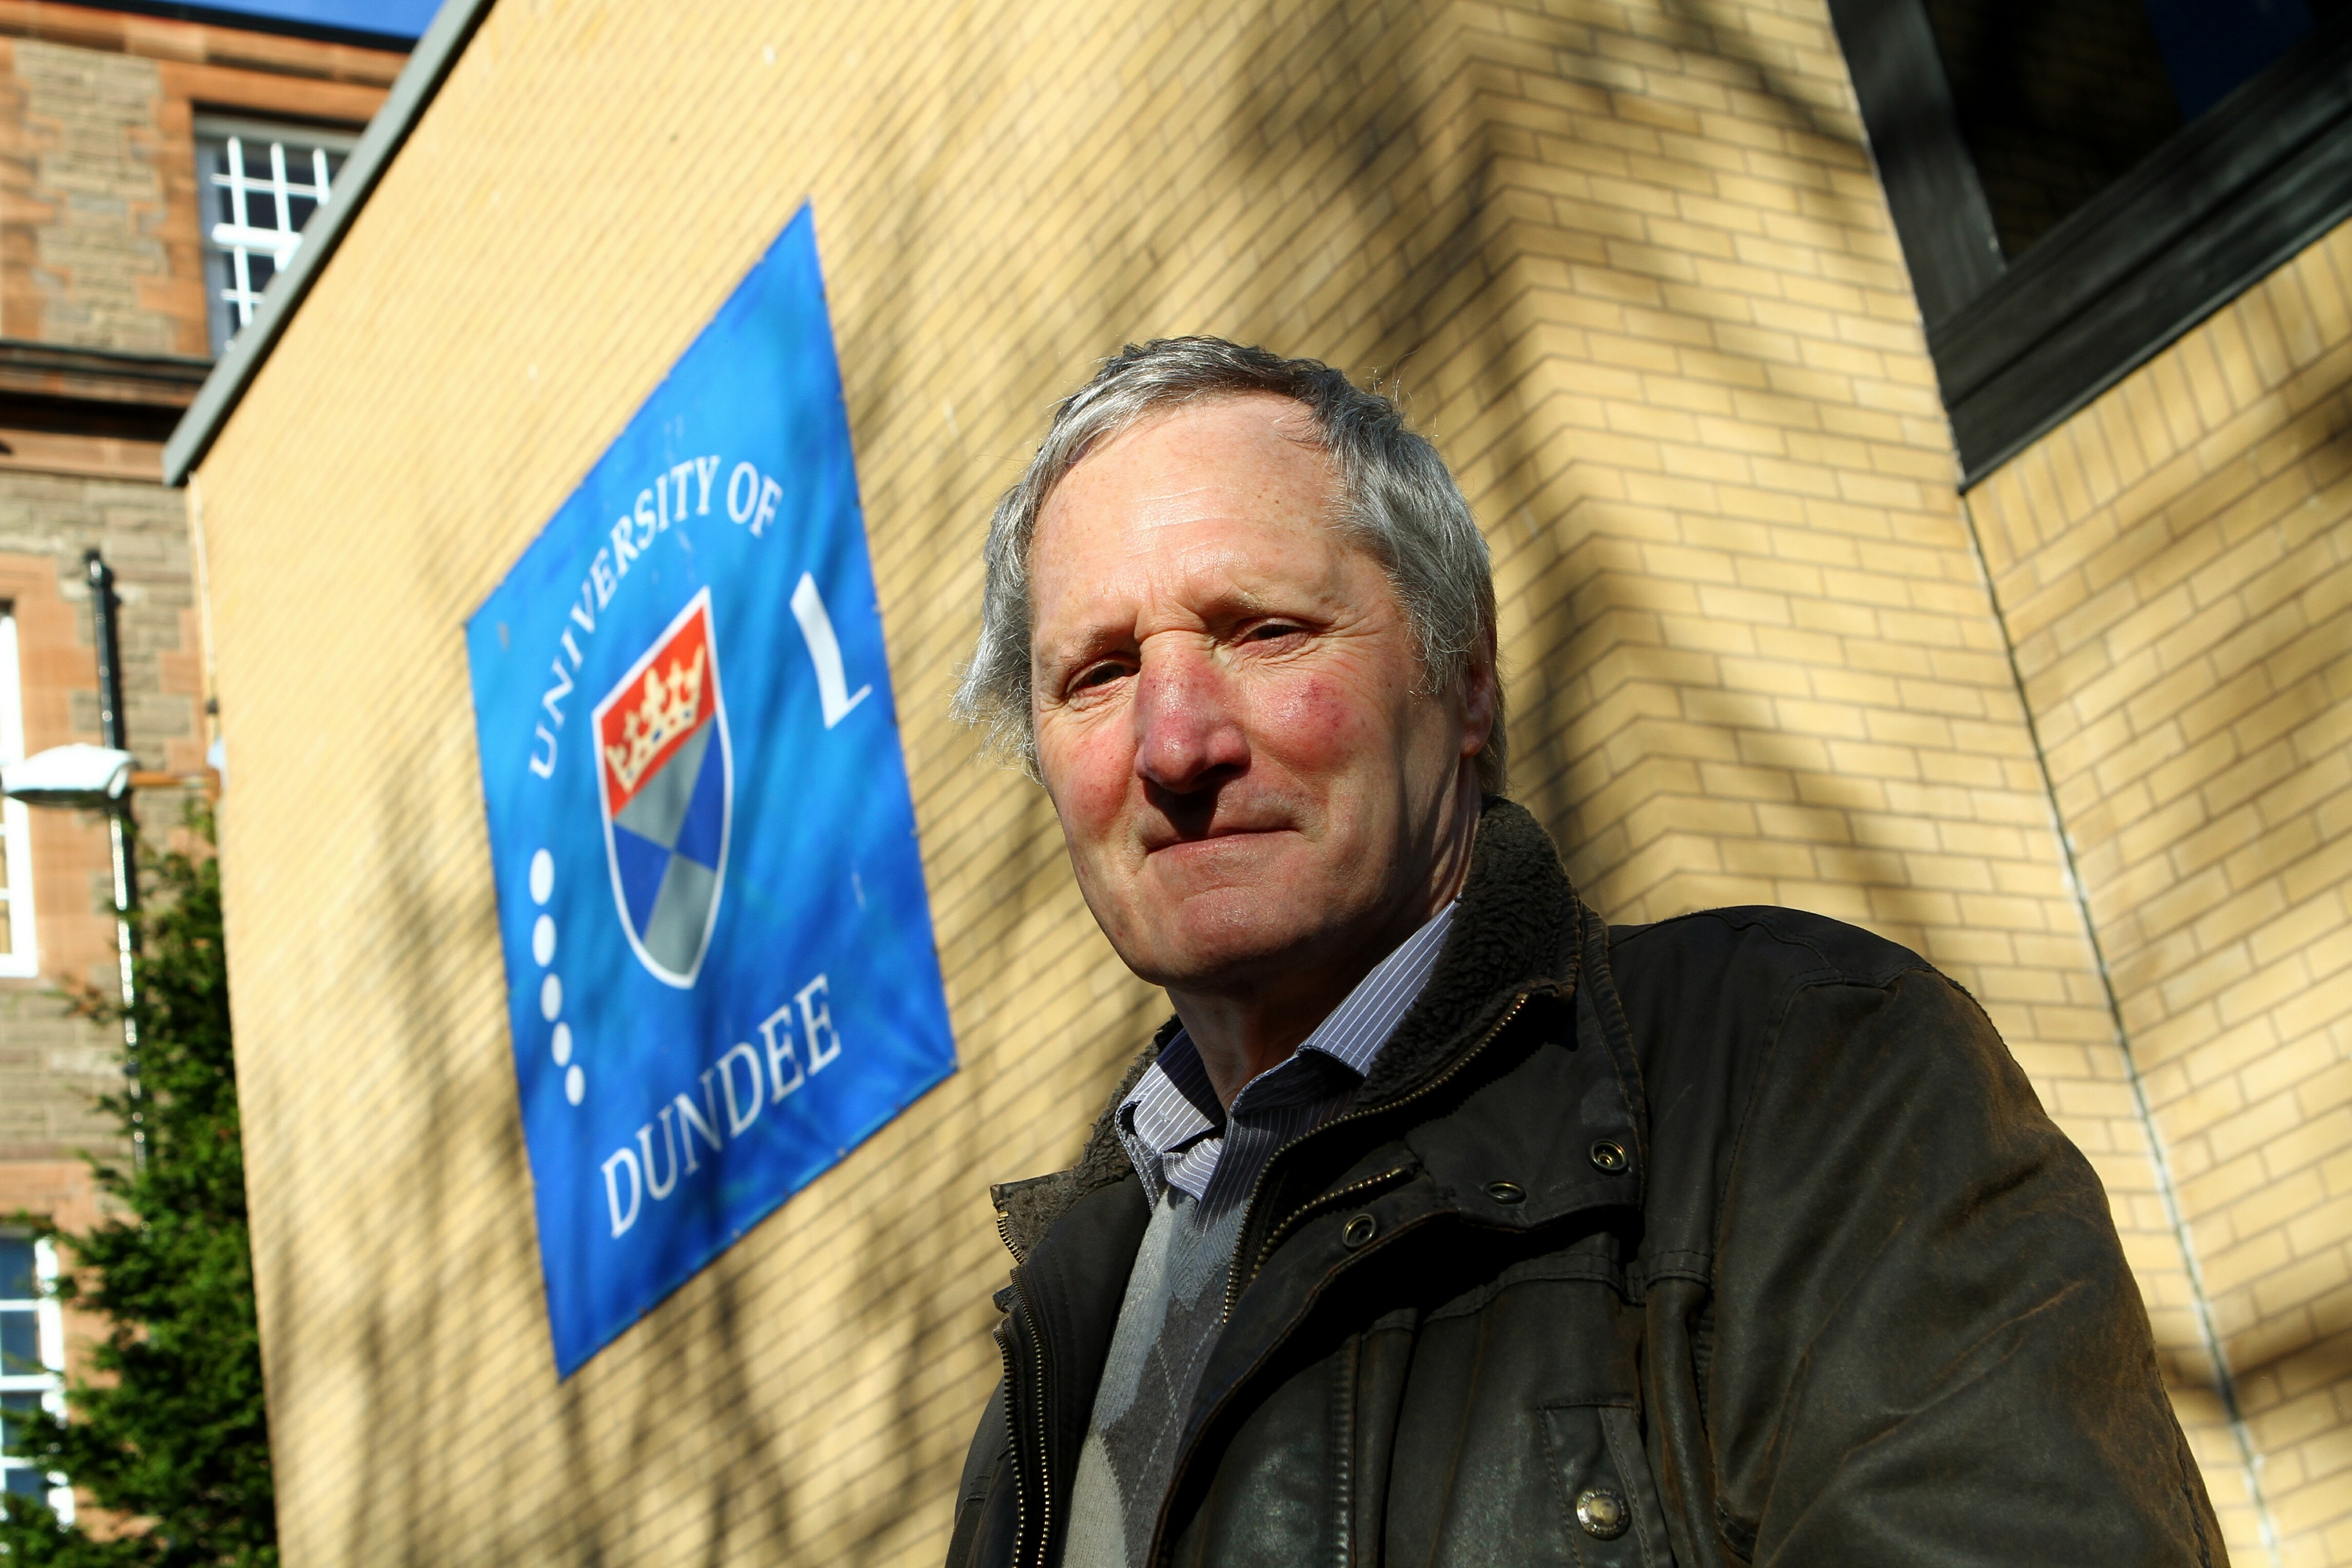 Philip Leckie has voiced anger over the scrapping of the adult recreational classes.